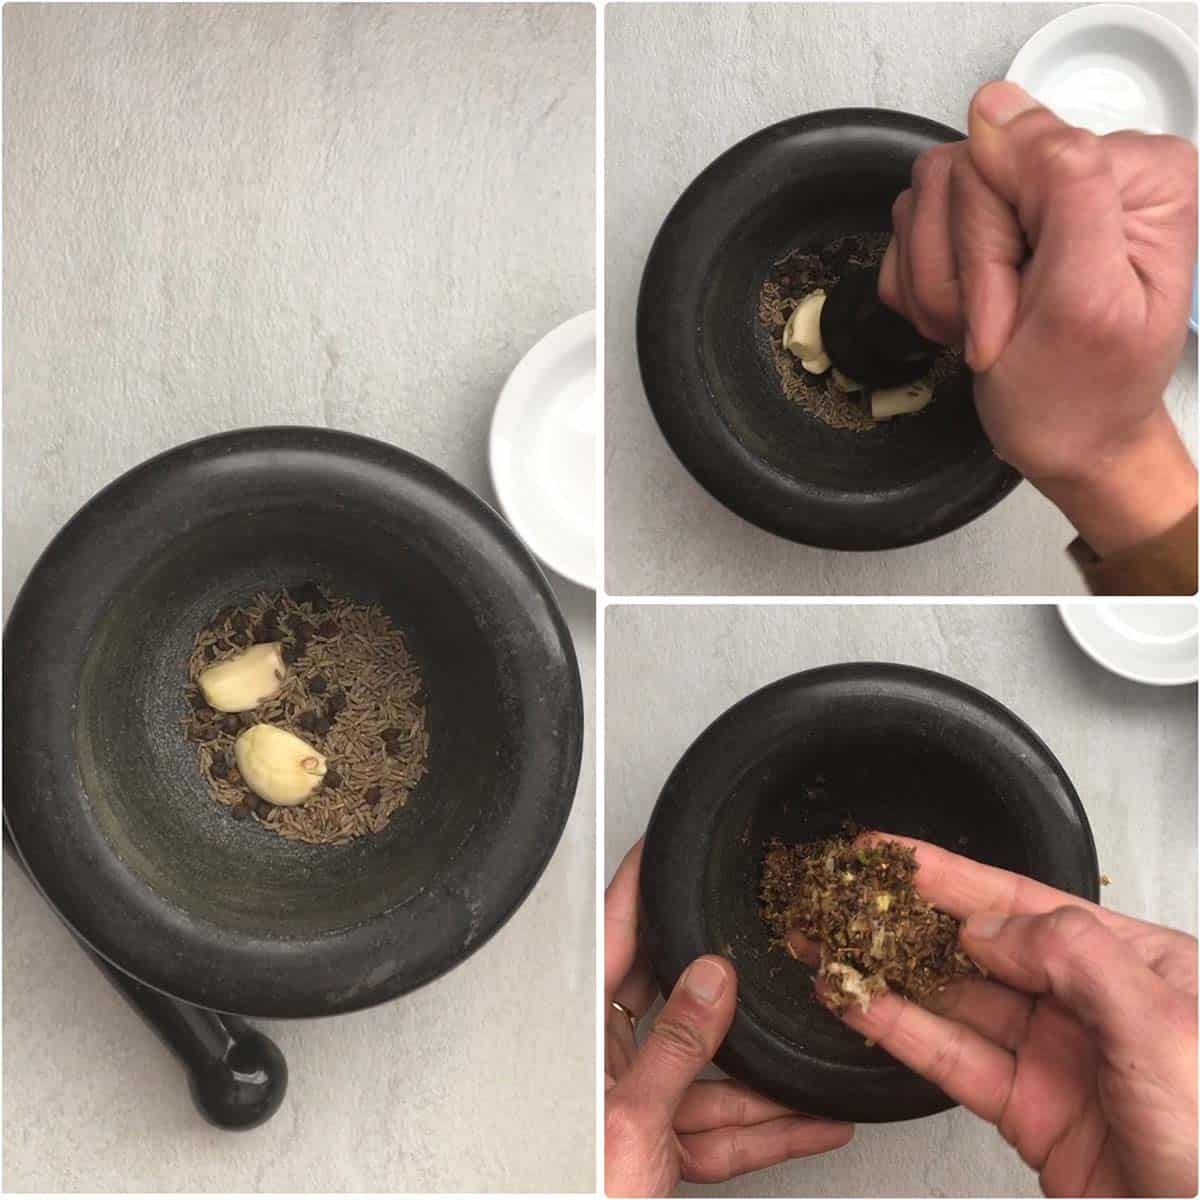 Step by step photos to make fresh spice paste with peppers, cumin seeds and garlic cloves